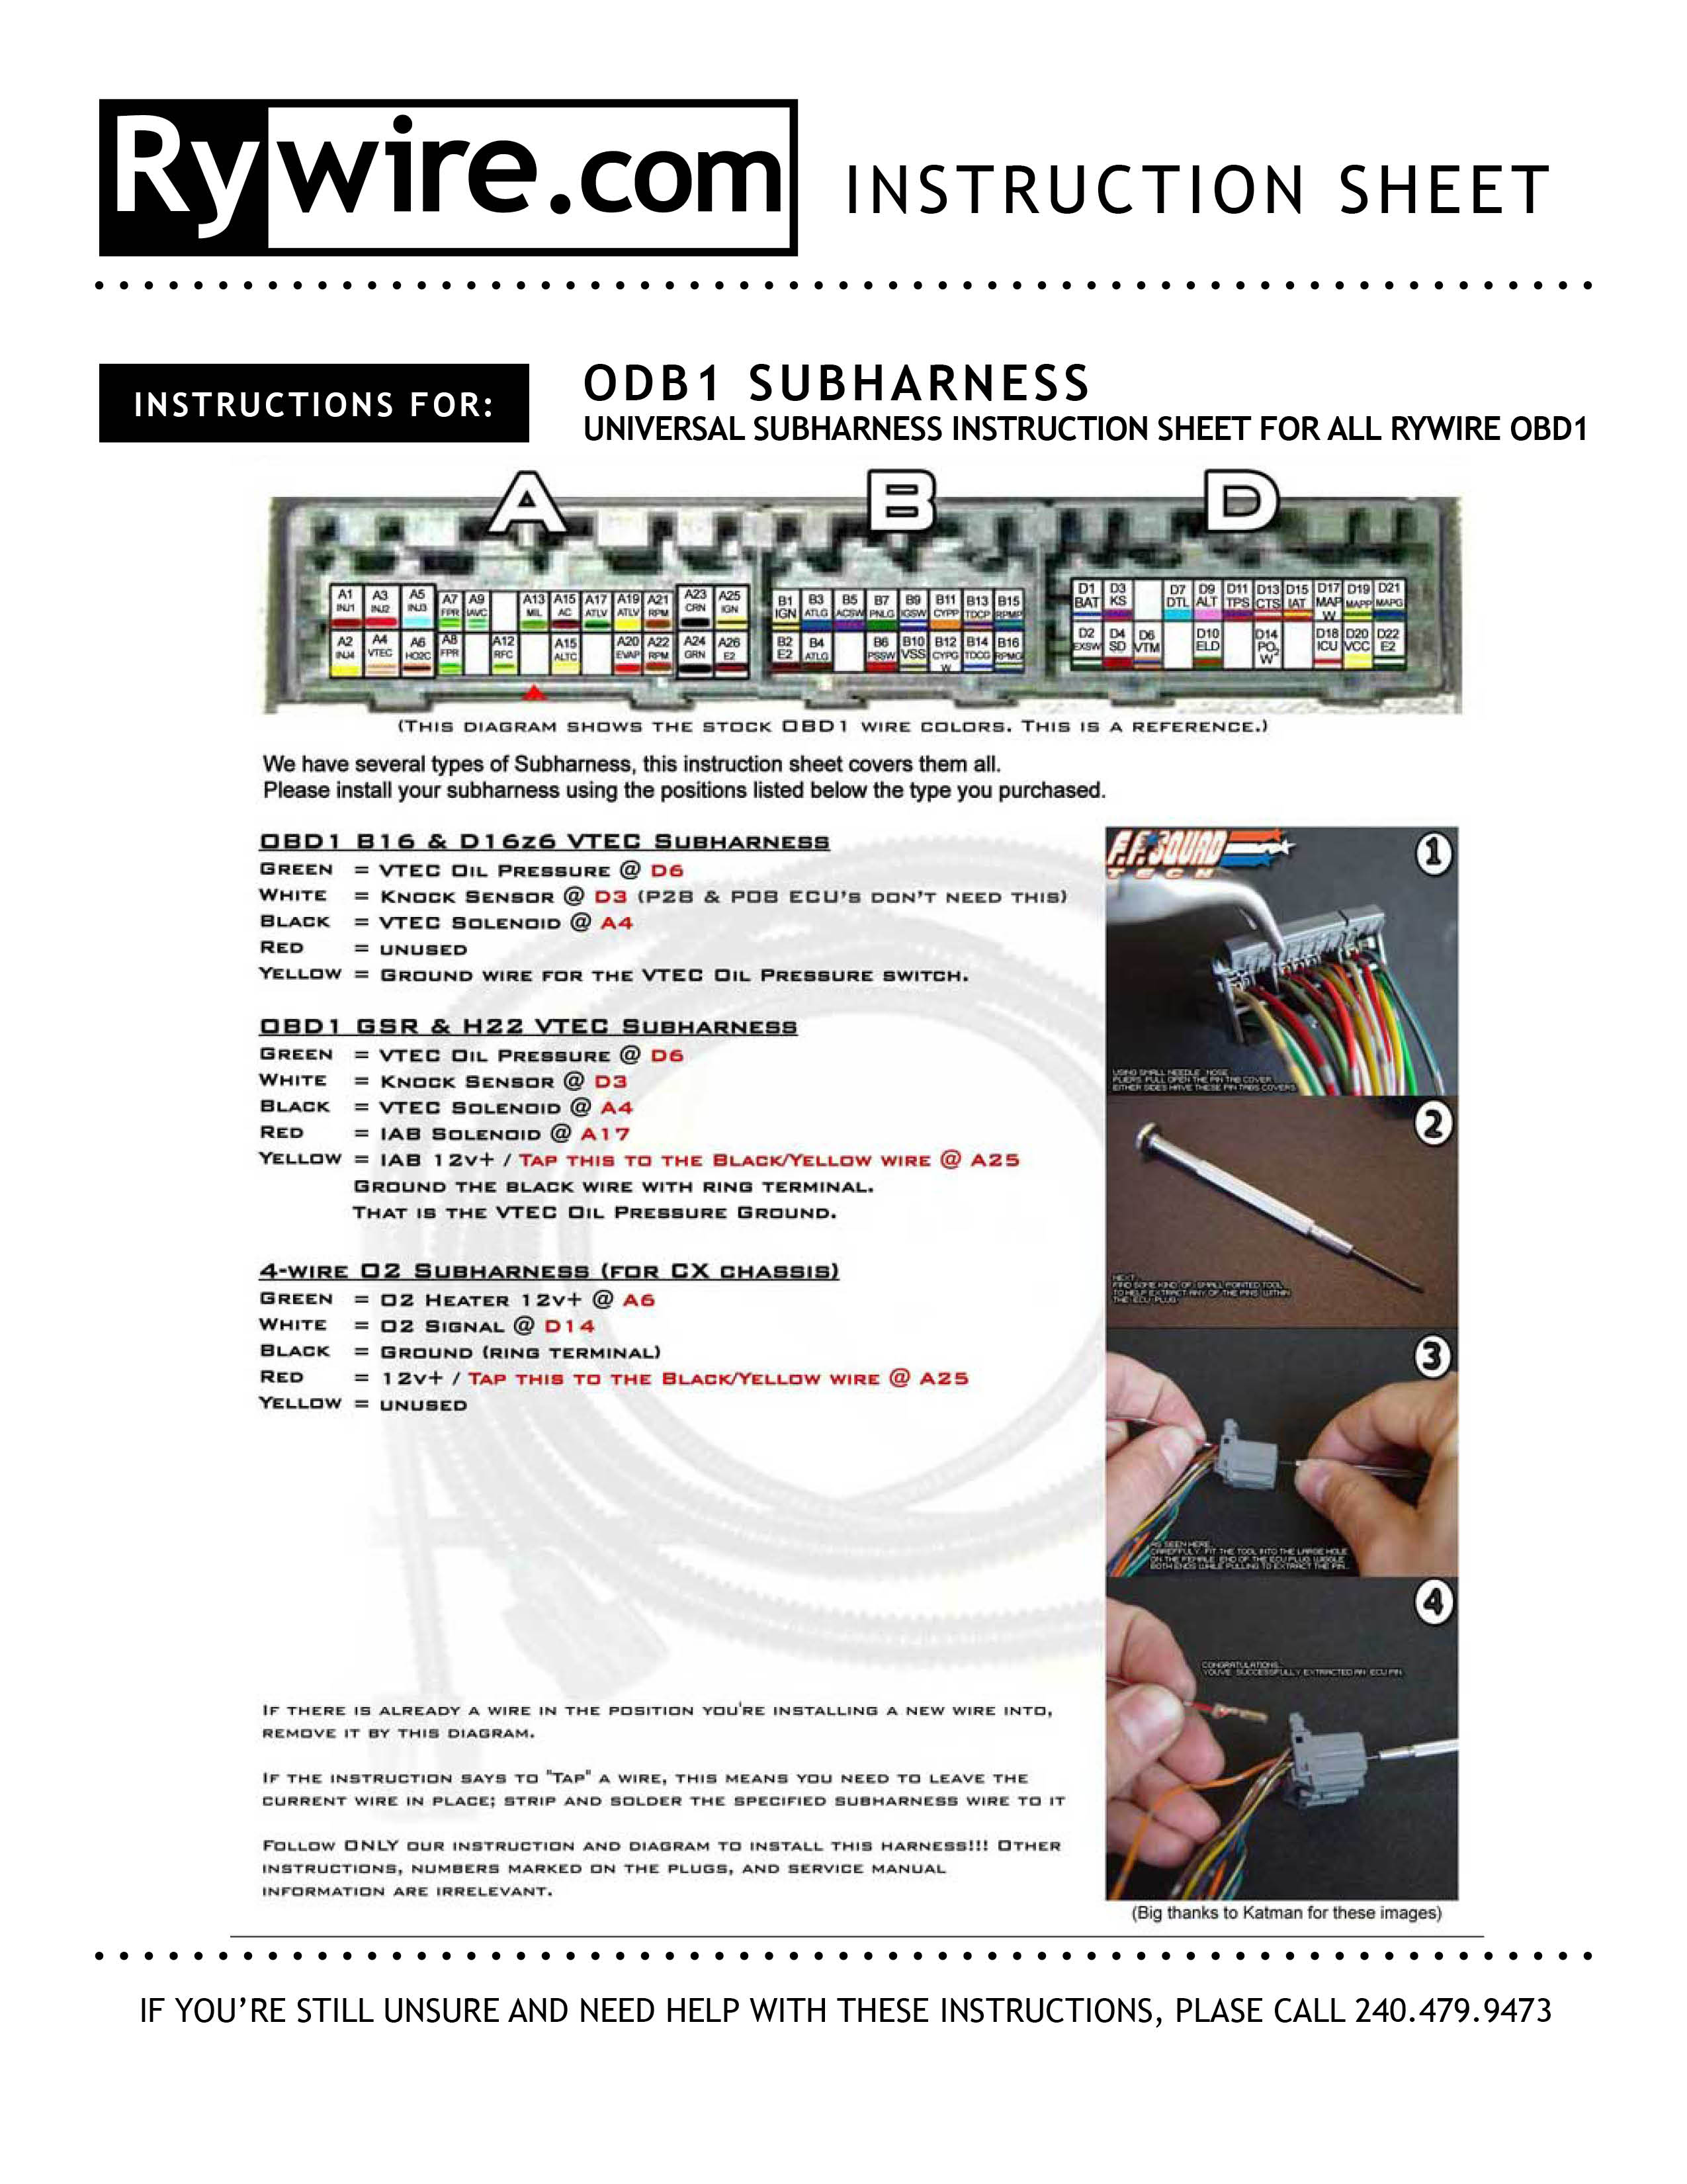 OBD2 A VTEC SUBHARNESS INSTRUCTIONS